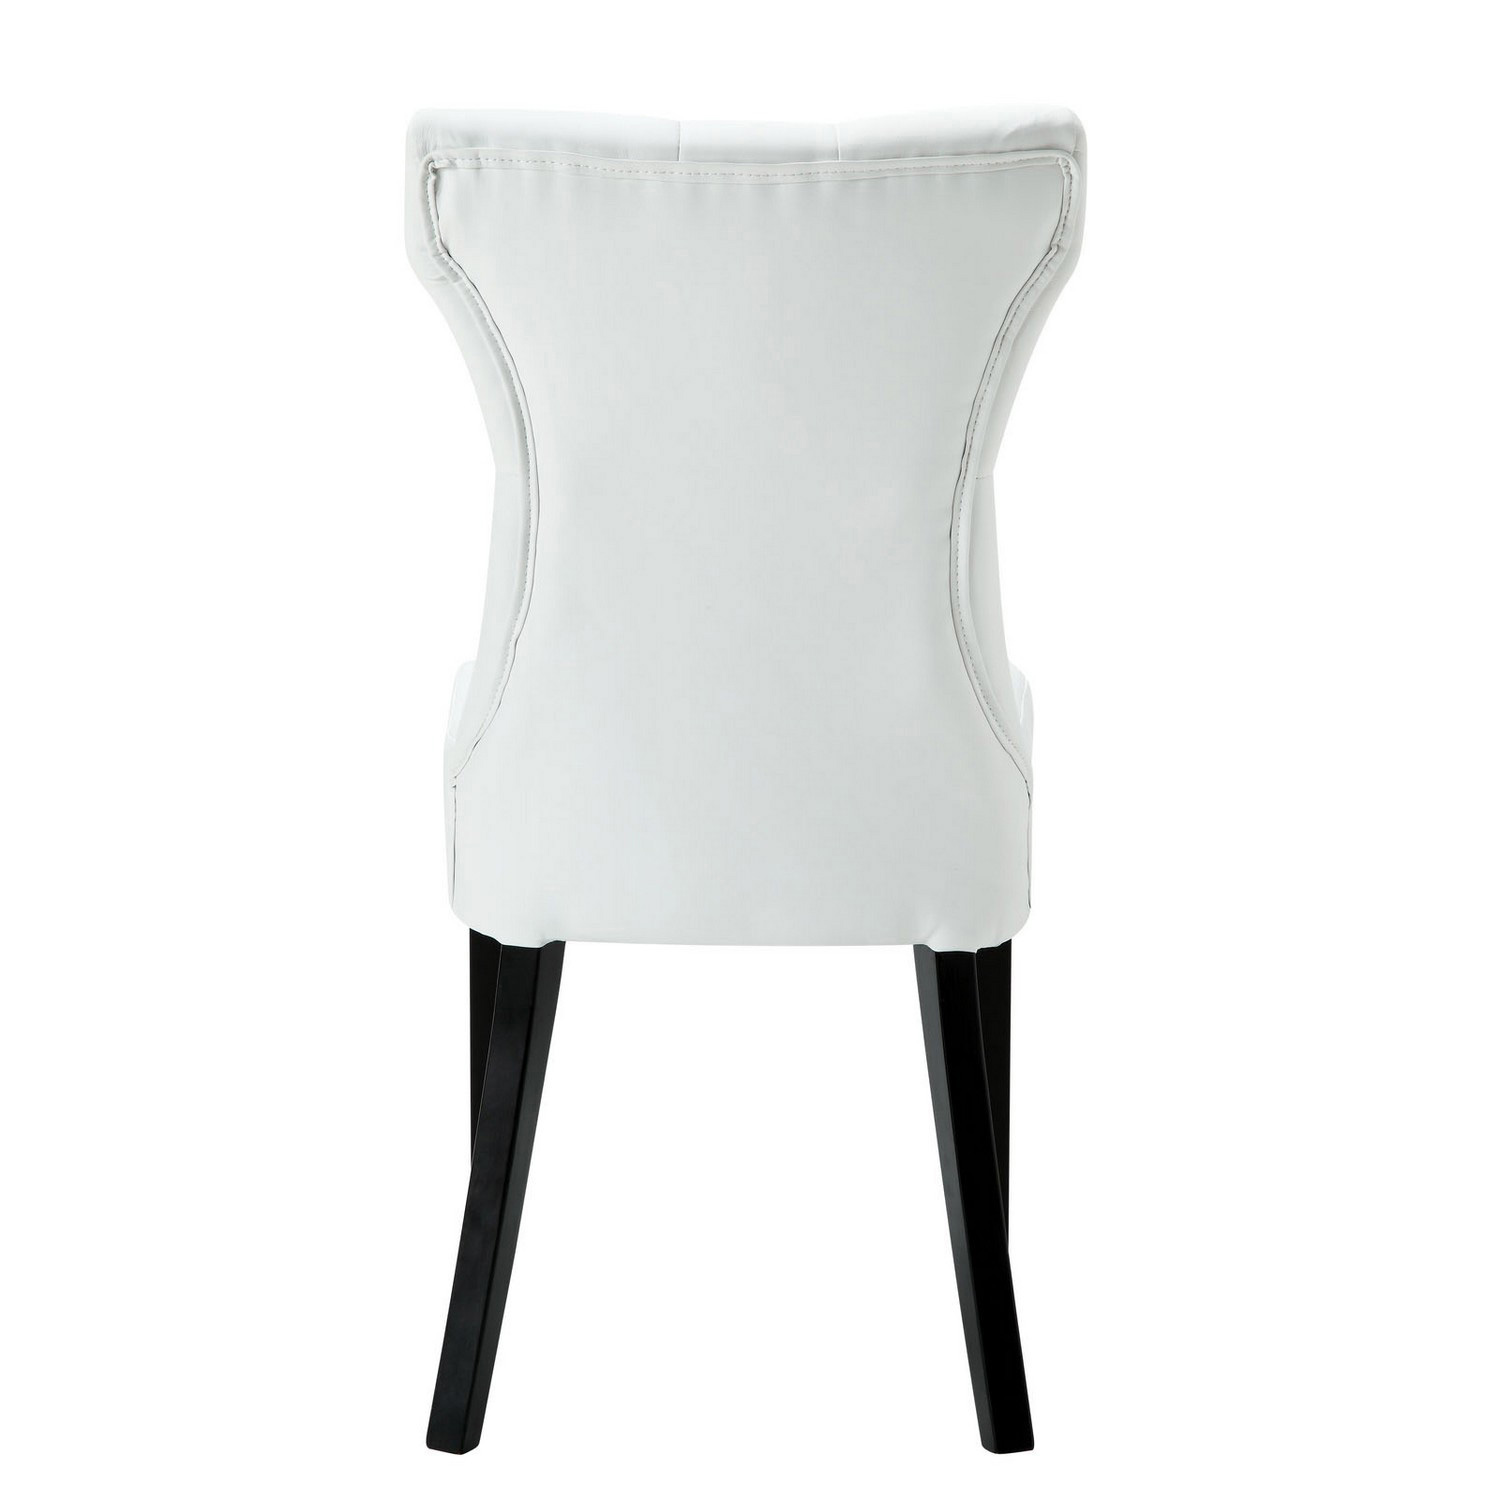 Modway Silhouette Dining Side Chair - White